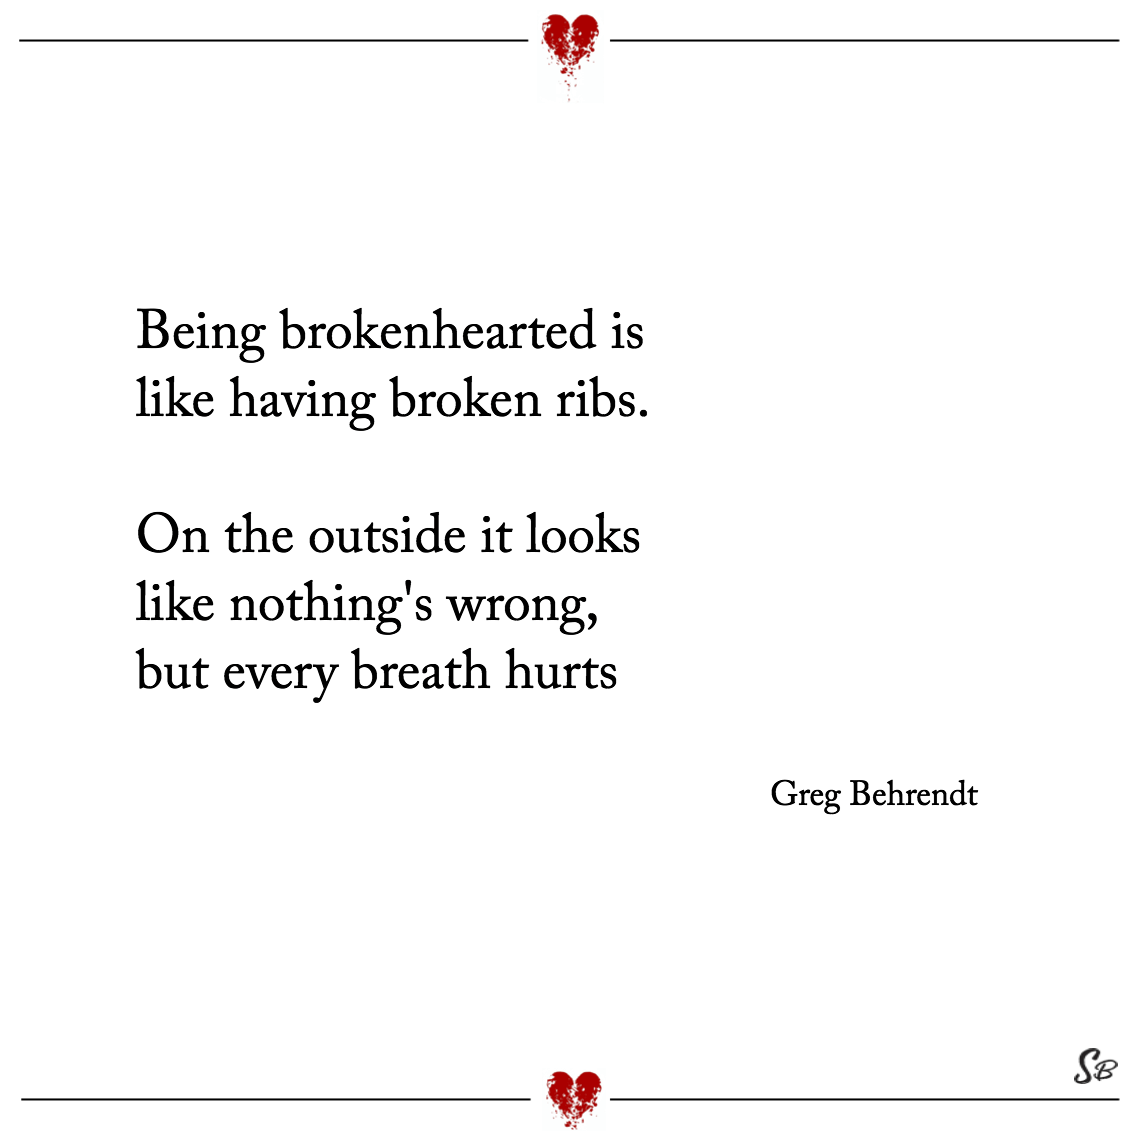 Being brokenhearted is like having broken ribs. on the outside it looks like nothing's wrong, but every breath hurts greg behrendt